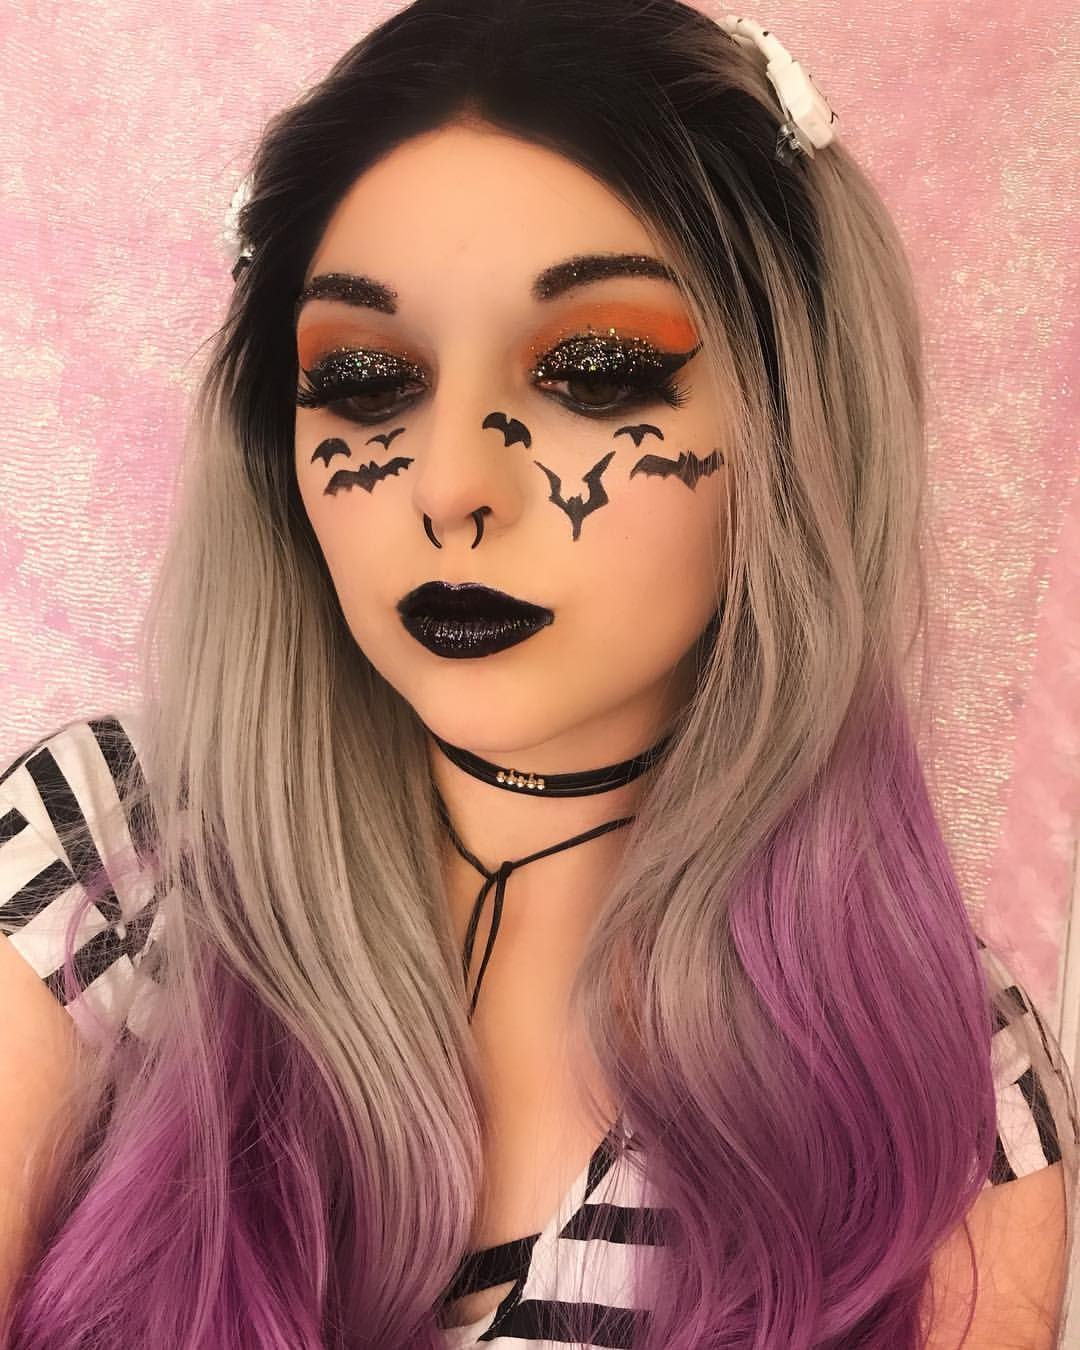 "(chrmille) on Instagram ""Halloween Princess 🖤 My eye"